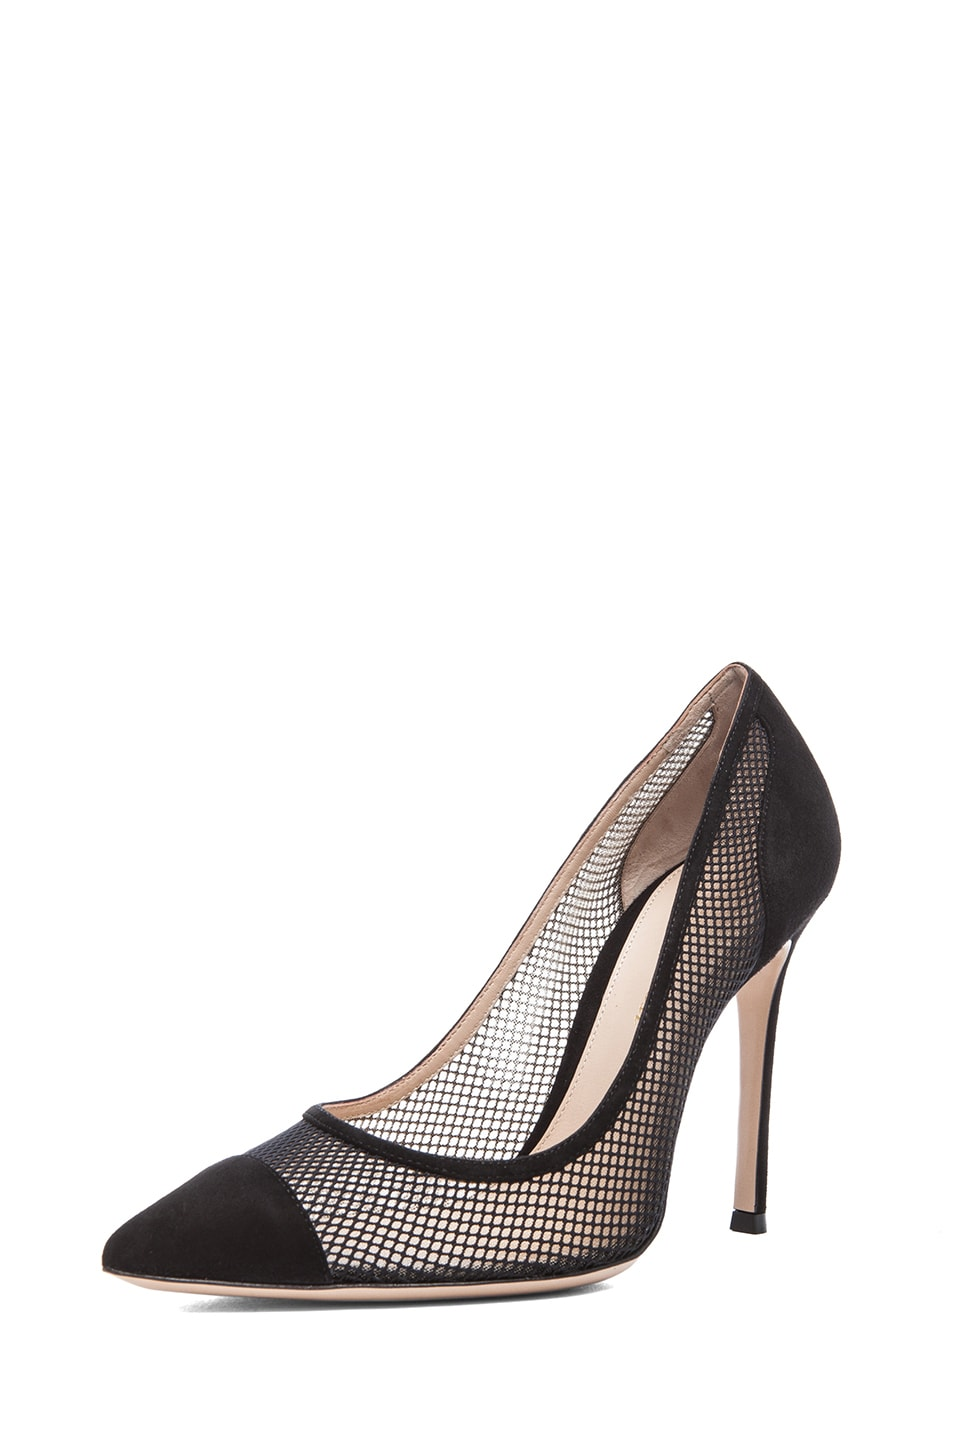 Image 2 of Gianvito Rossi Suede Pumps in Nero & Nude